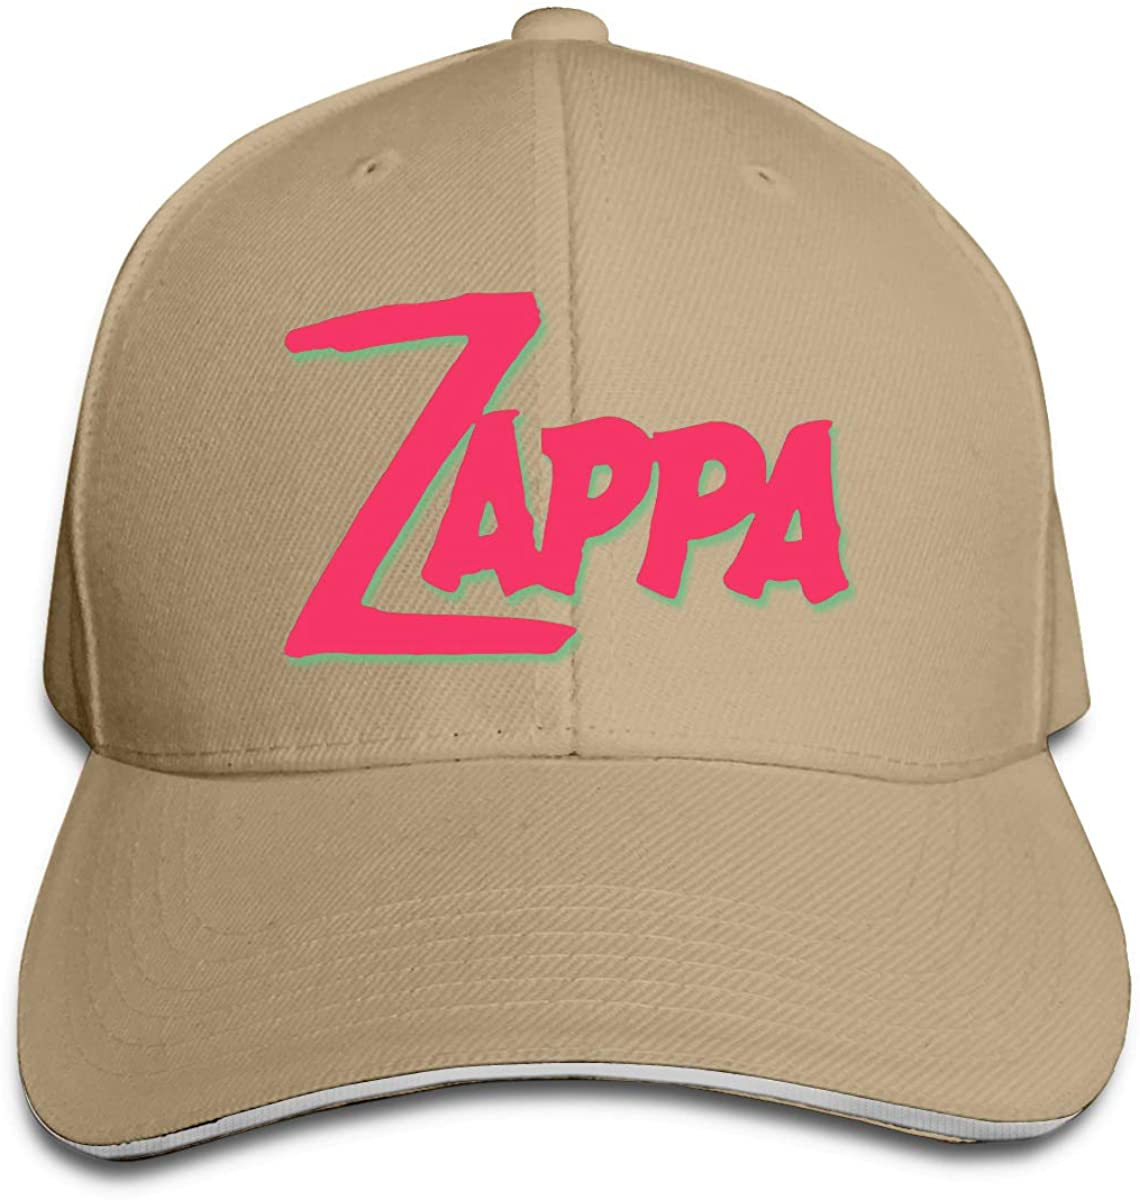 Frank Zappa Breathable Sunscreen Sunshade Casual All-Match Hat